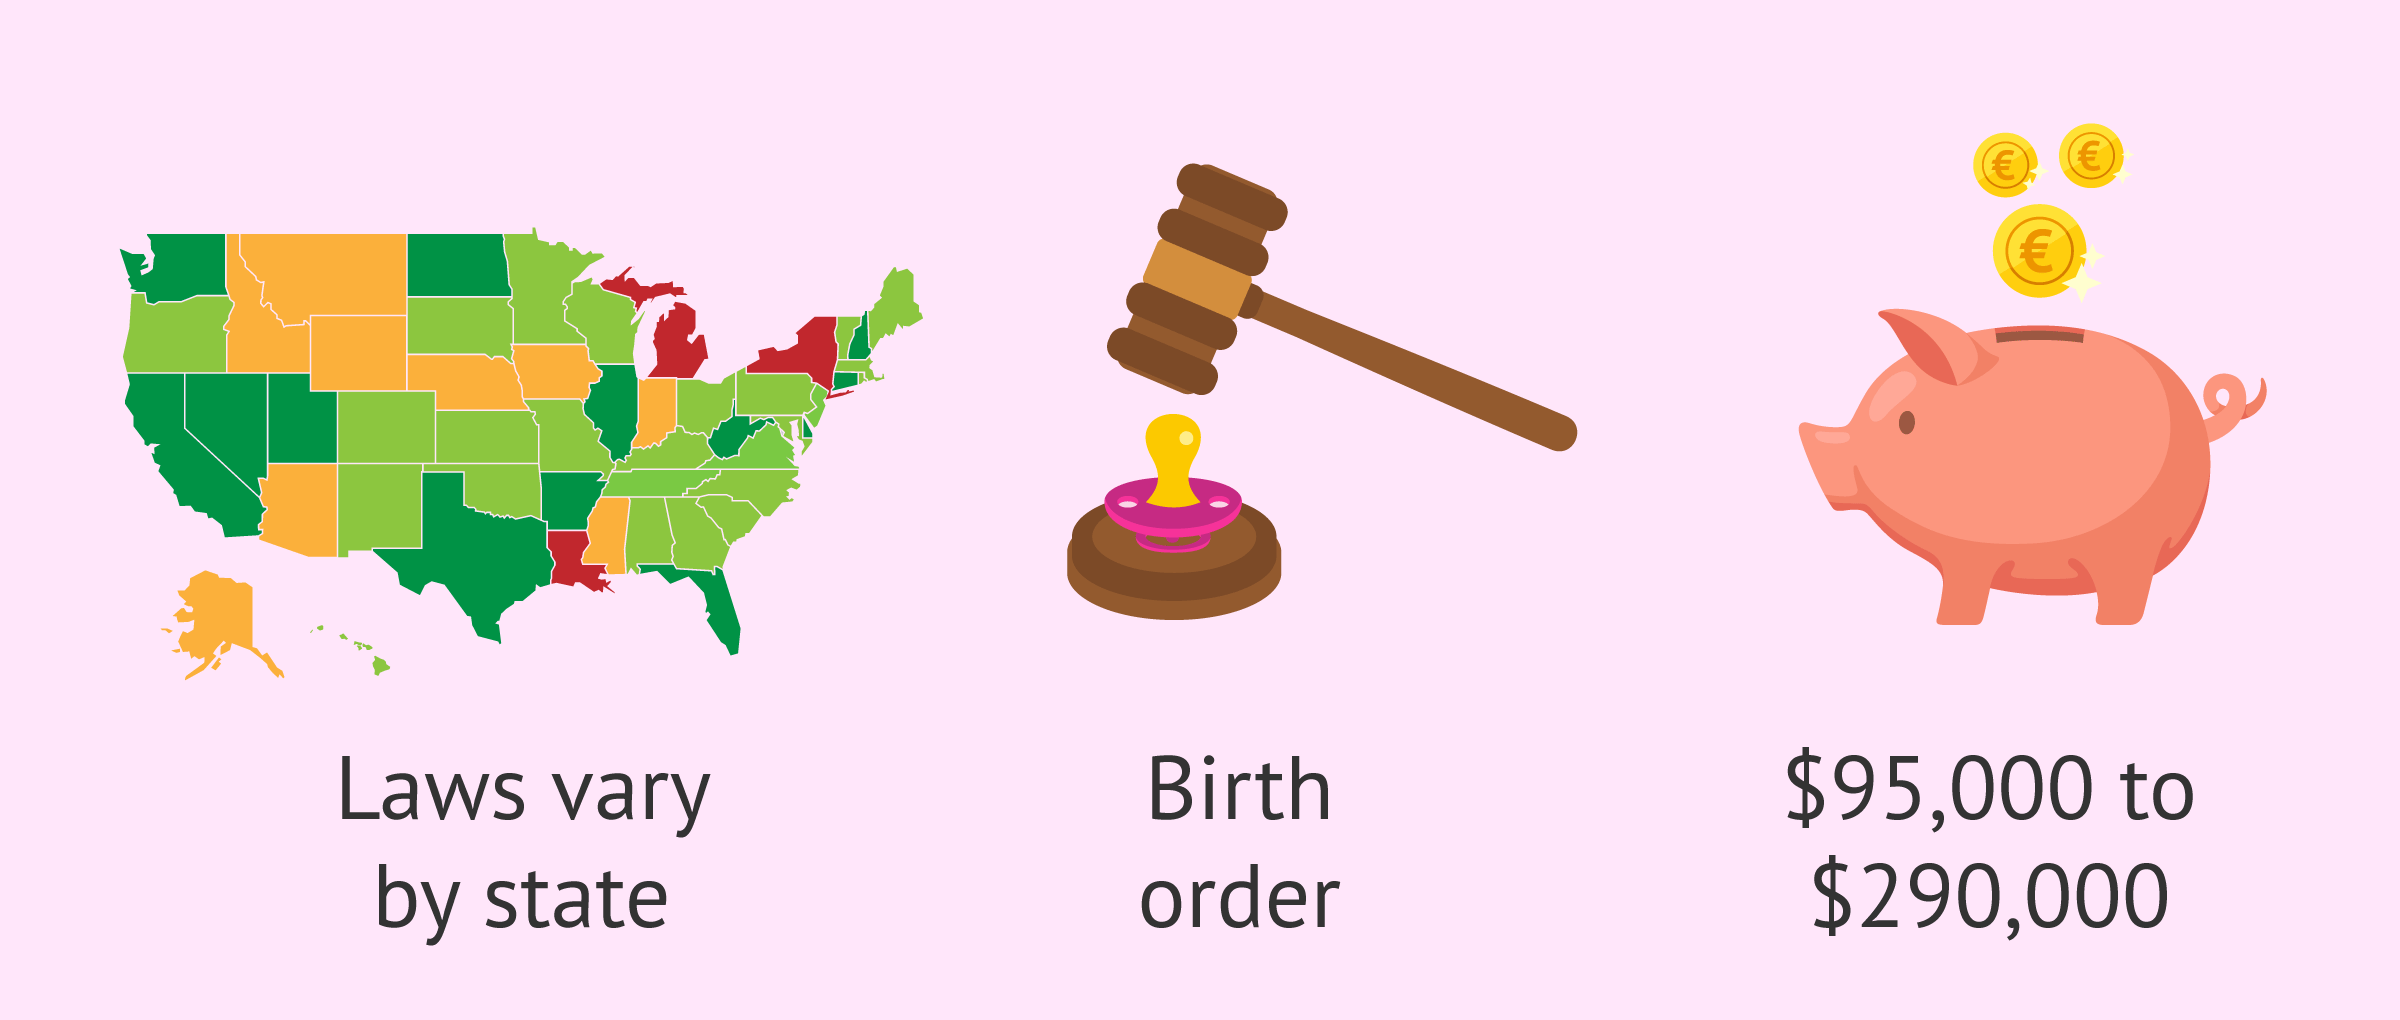 Gestational surrogacy in the United States of America